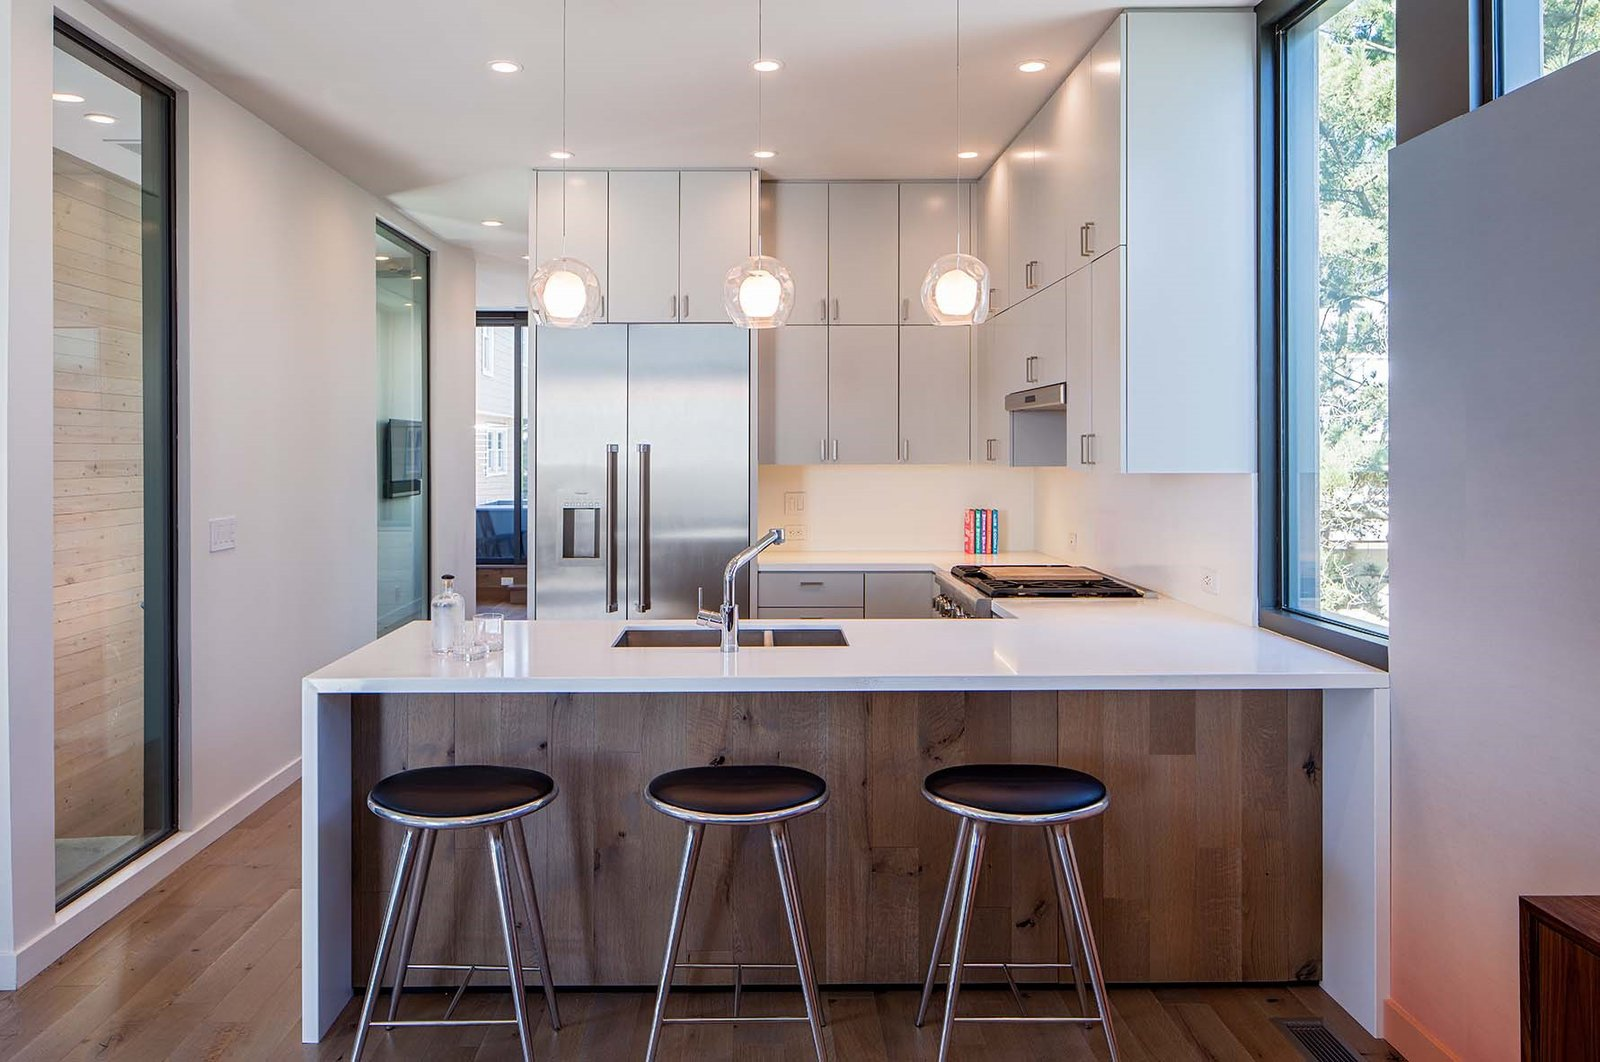 Beach Haven Residence, Kitchen.   Beach Haven Residence by Specht Architects